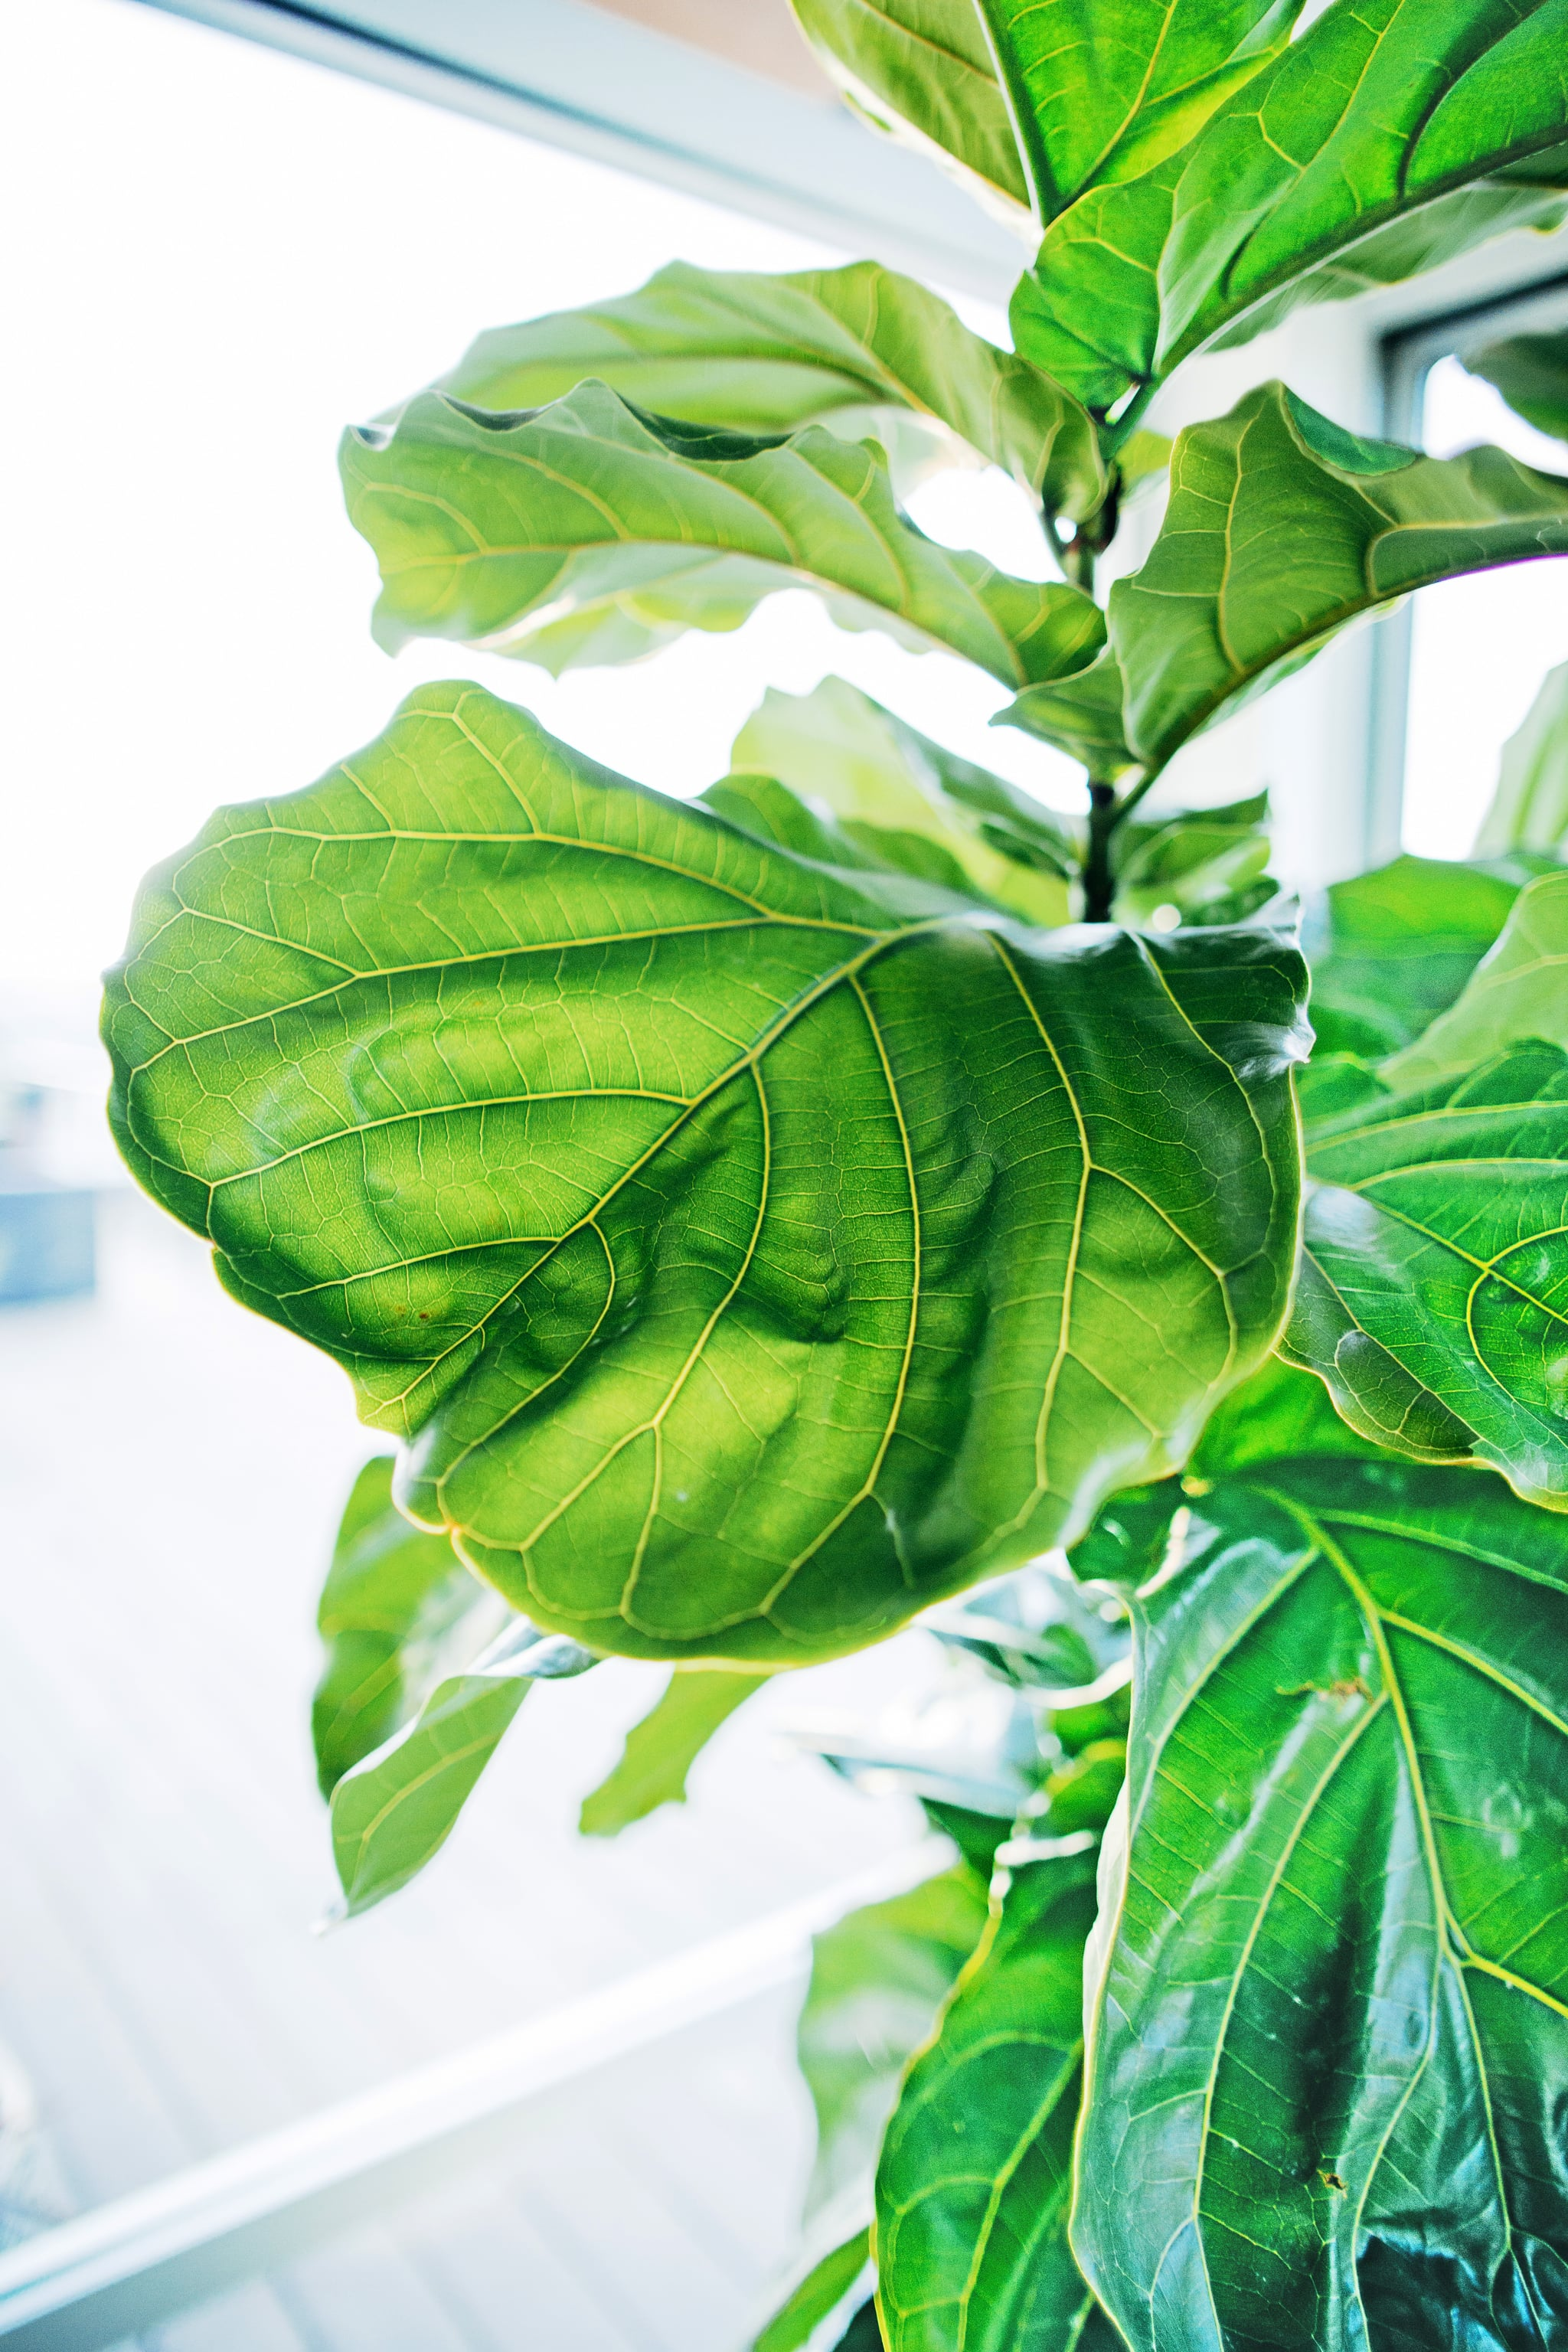 of trendy plants dominating instagram accounts thereu0027s no denying the staying power of one in particular the fiddle leaf fig tree